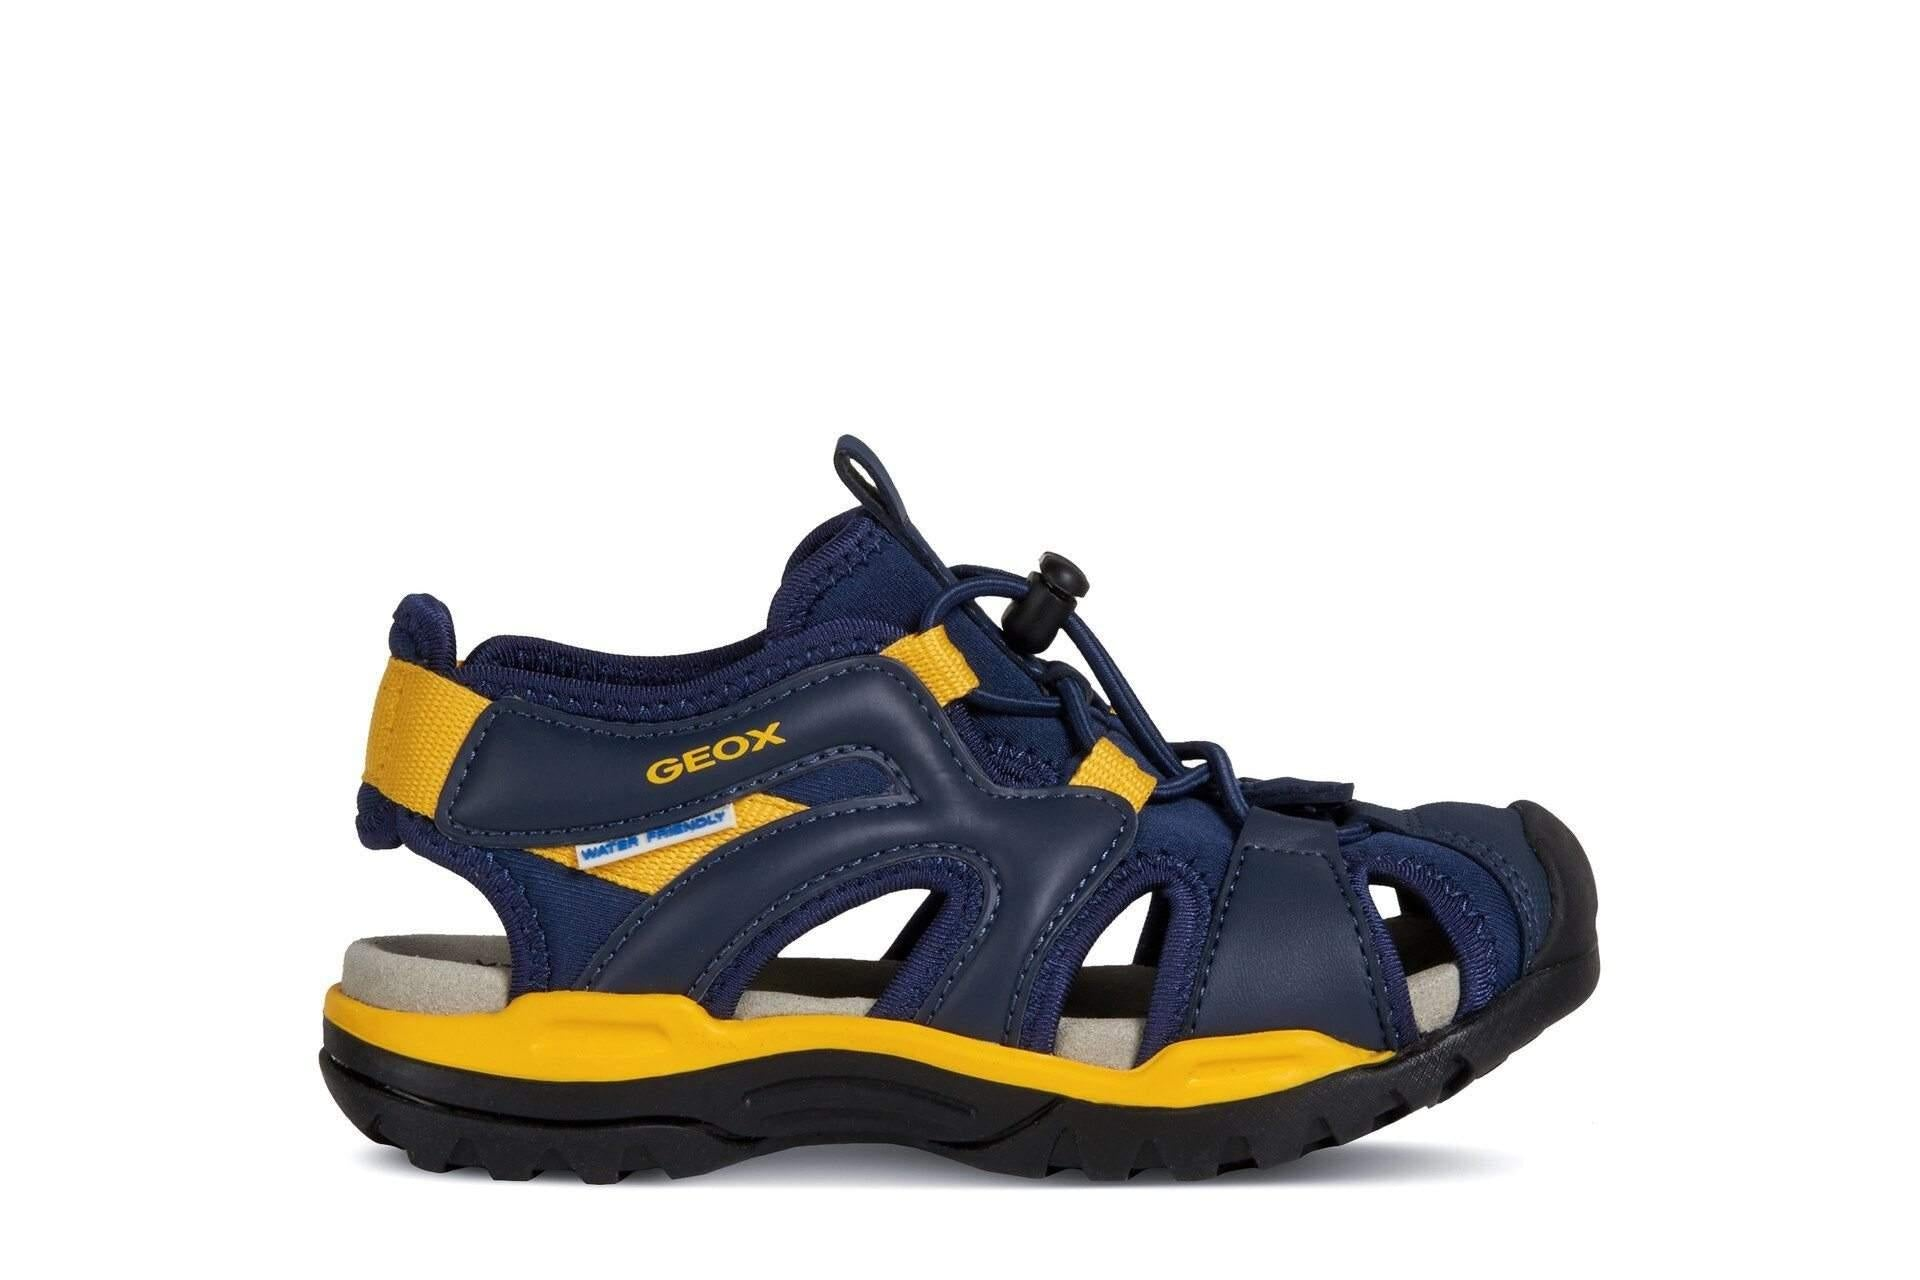 Geox BOREALIS Water Friendly Sandals / Little Kids / Youth - shoekid.ca